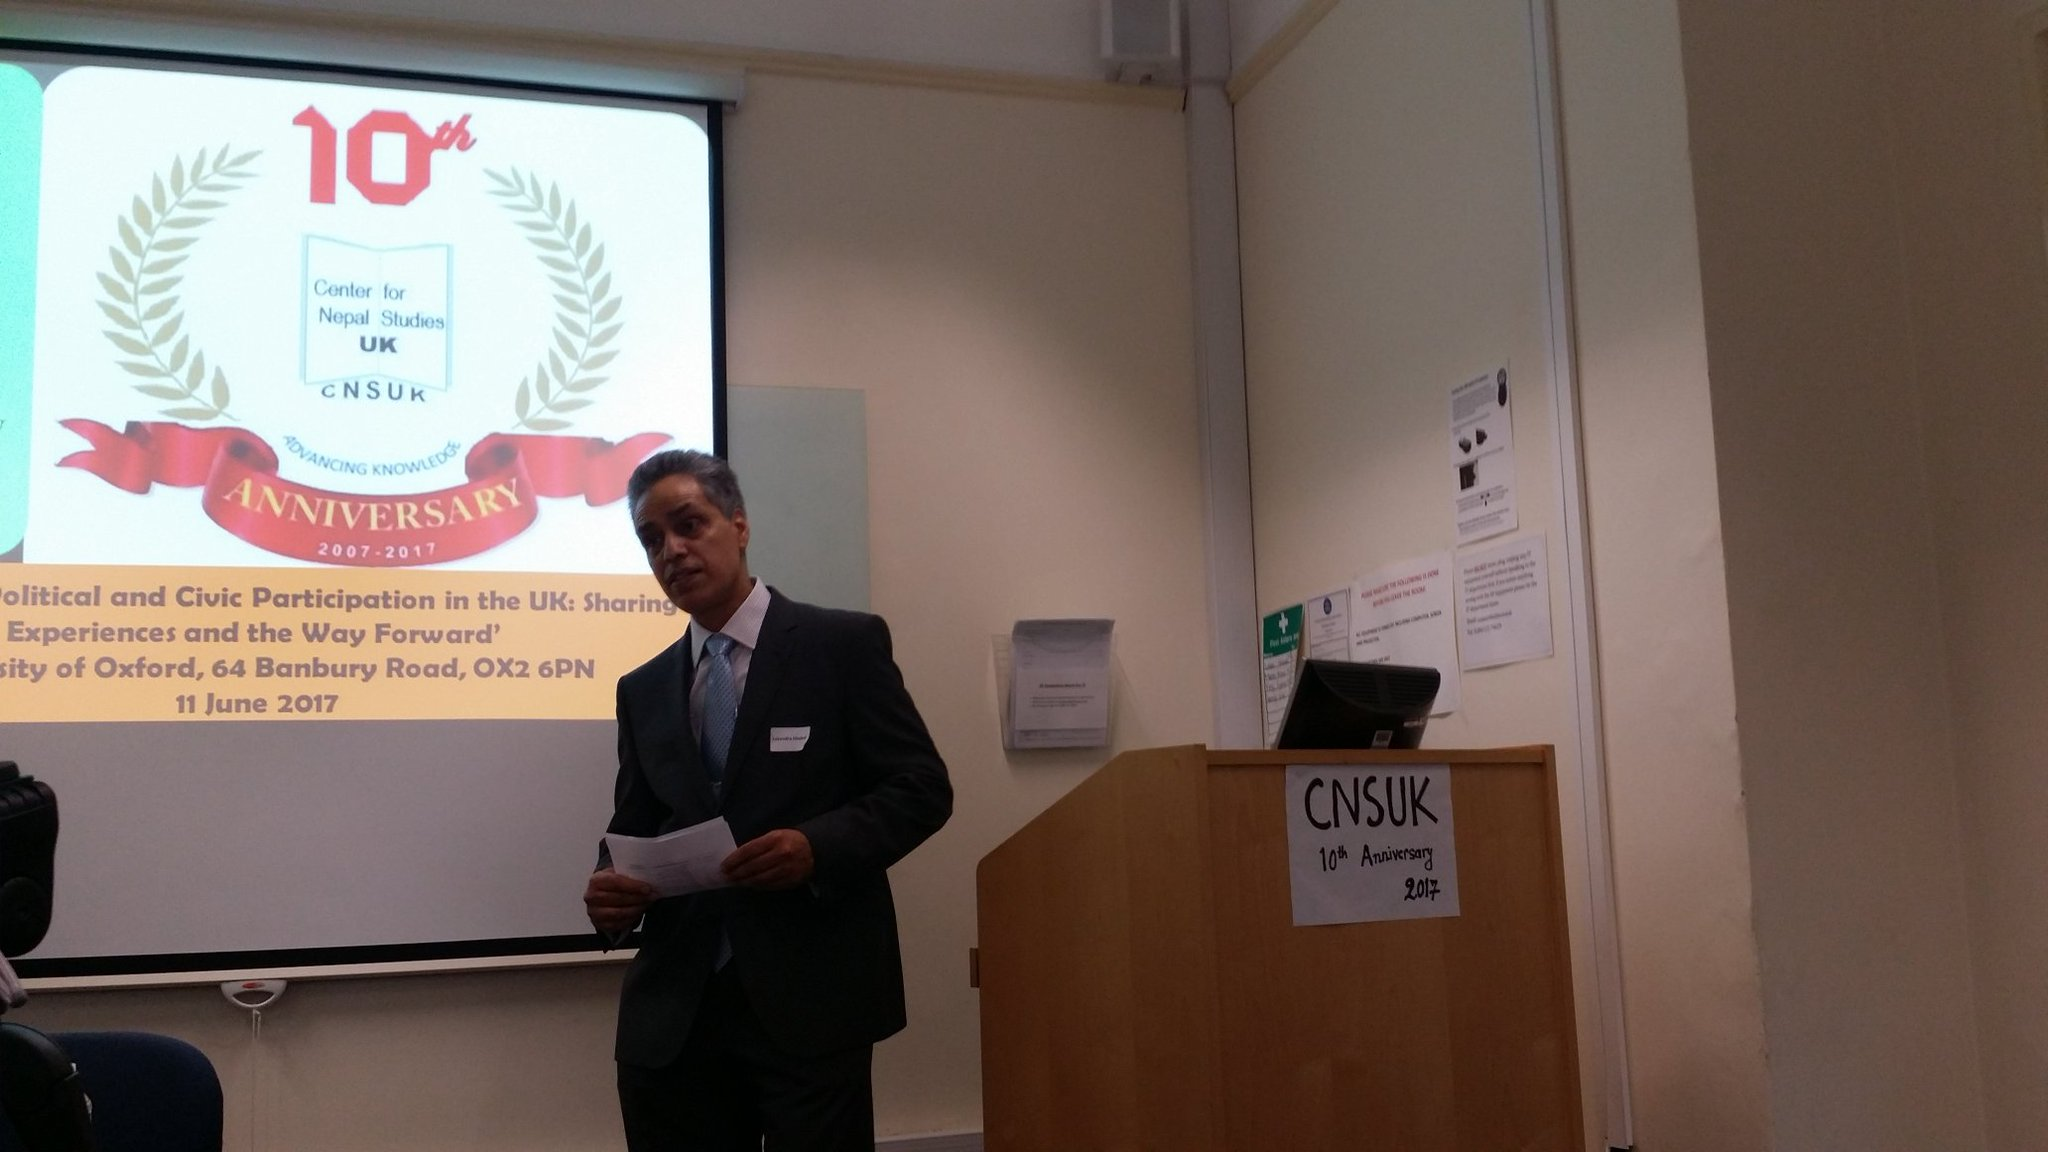 Welcome by Lokendra Dhakal #CNSUK10 https://t.co/ysyp3oq0YD